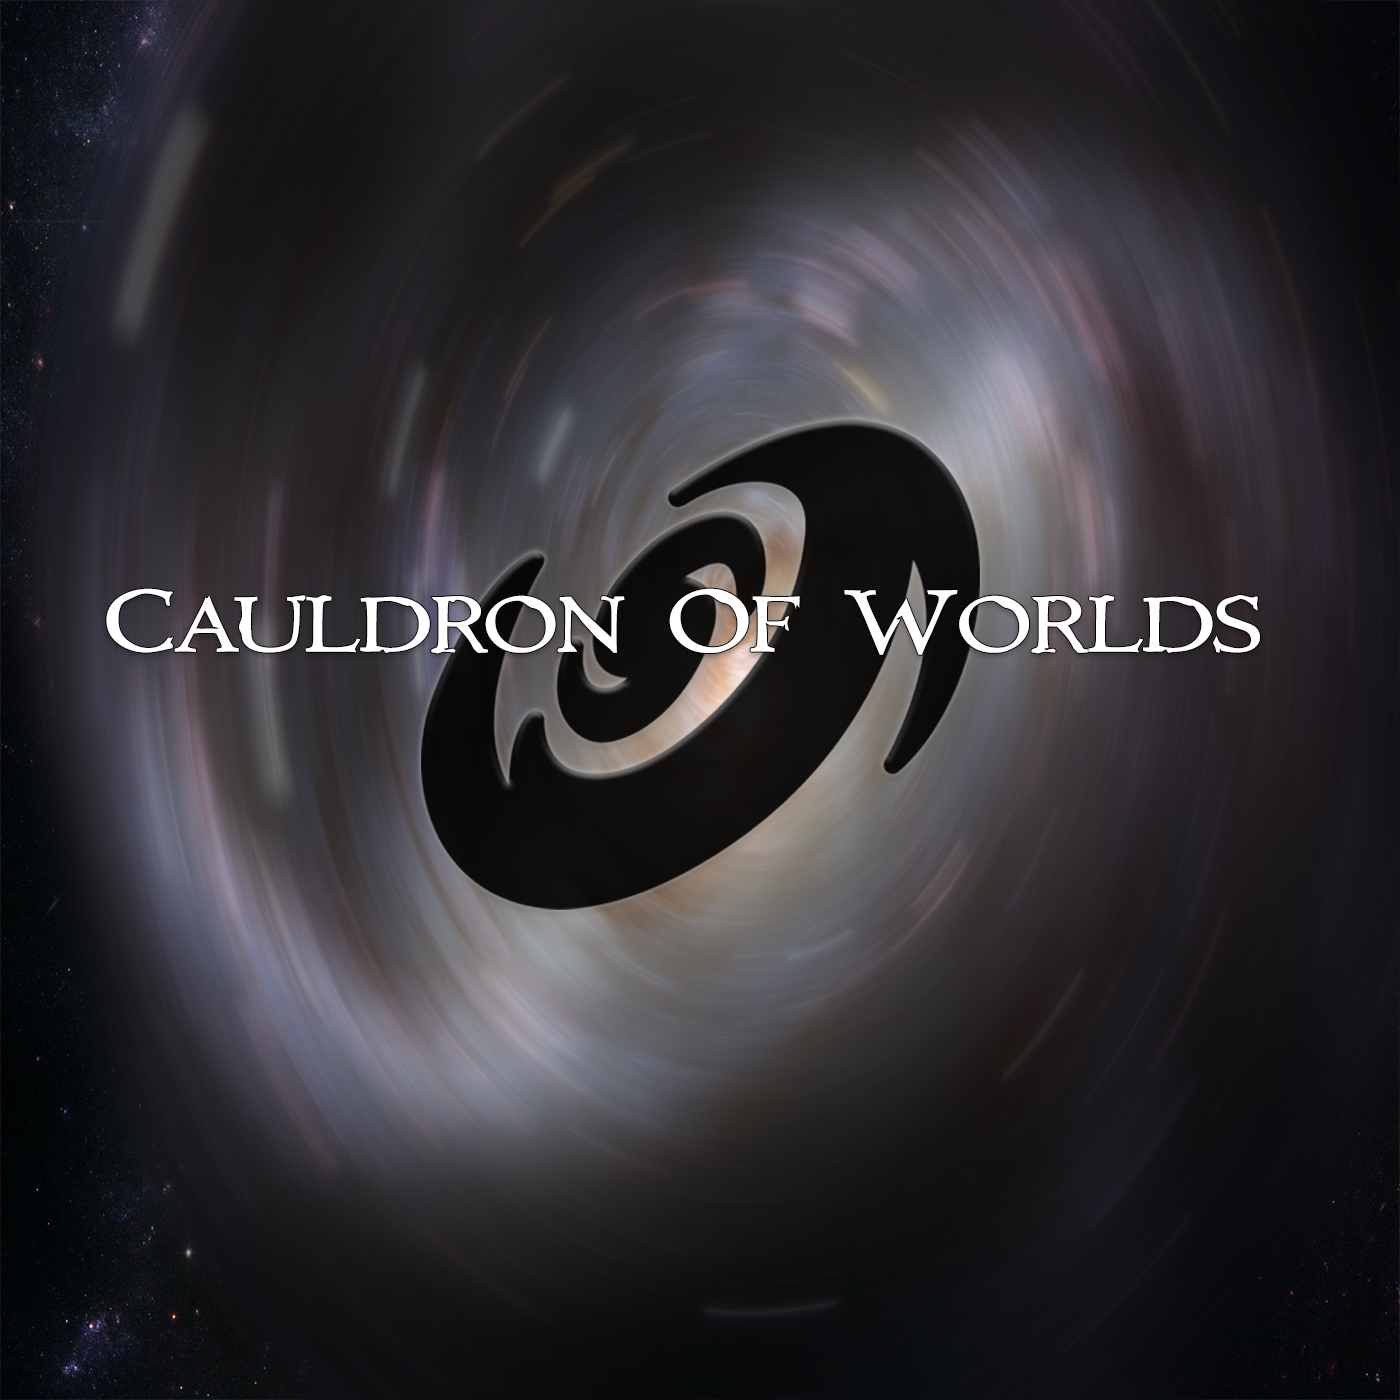 Cauldron of Worlds